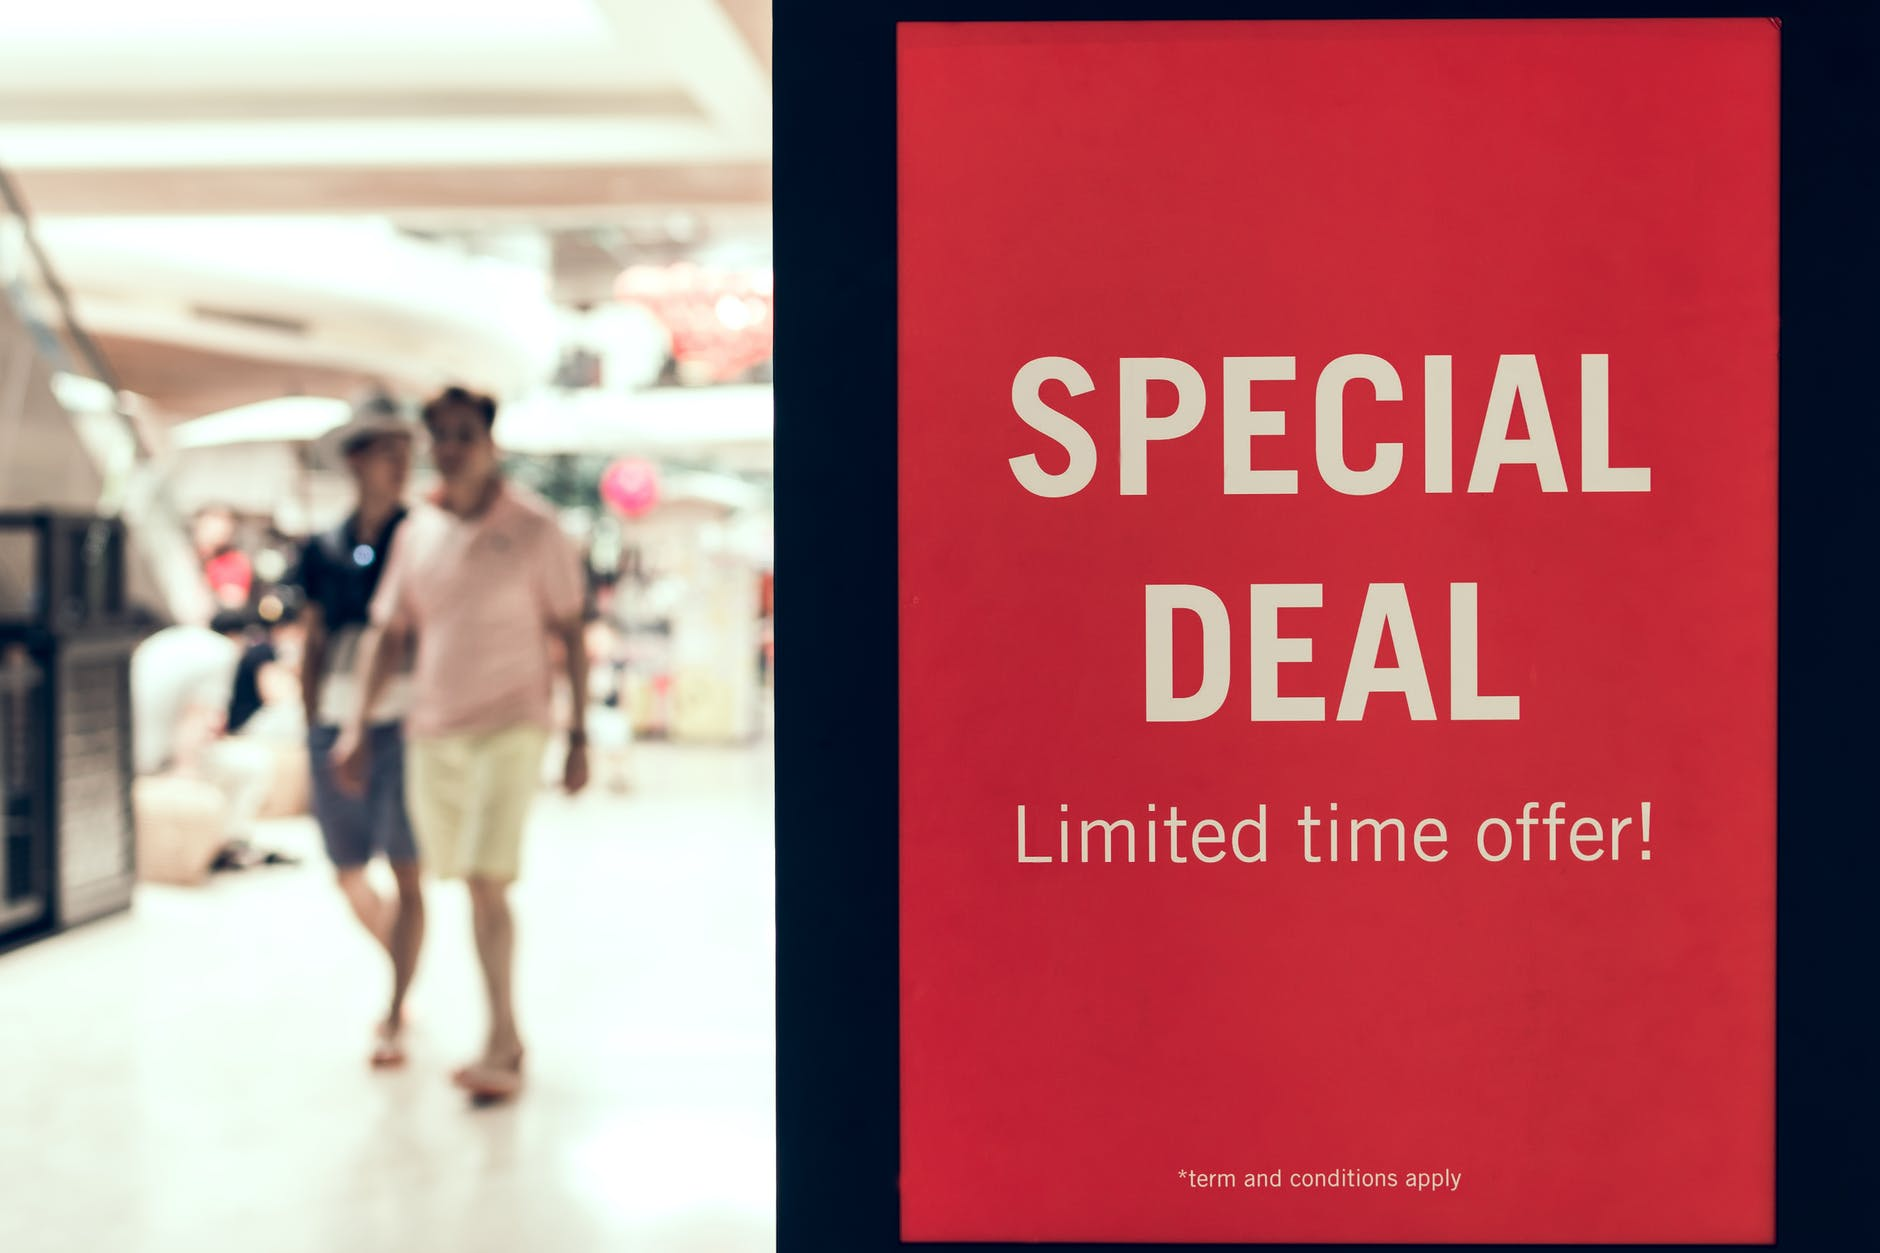 irresistible offers and discounts